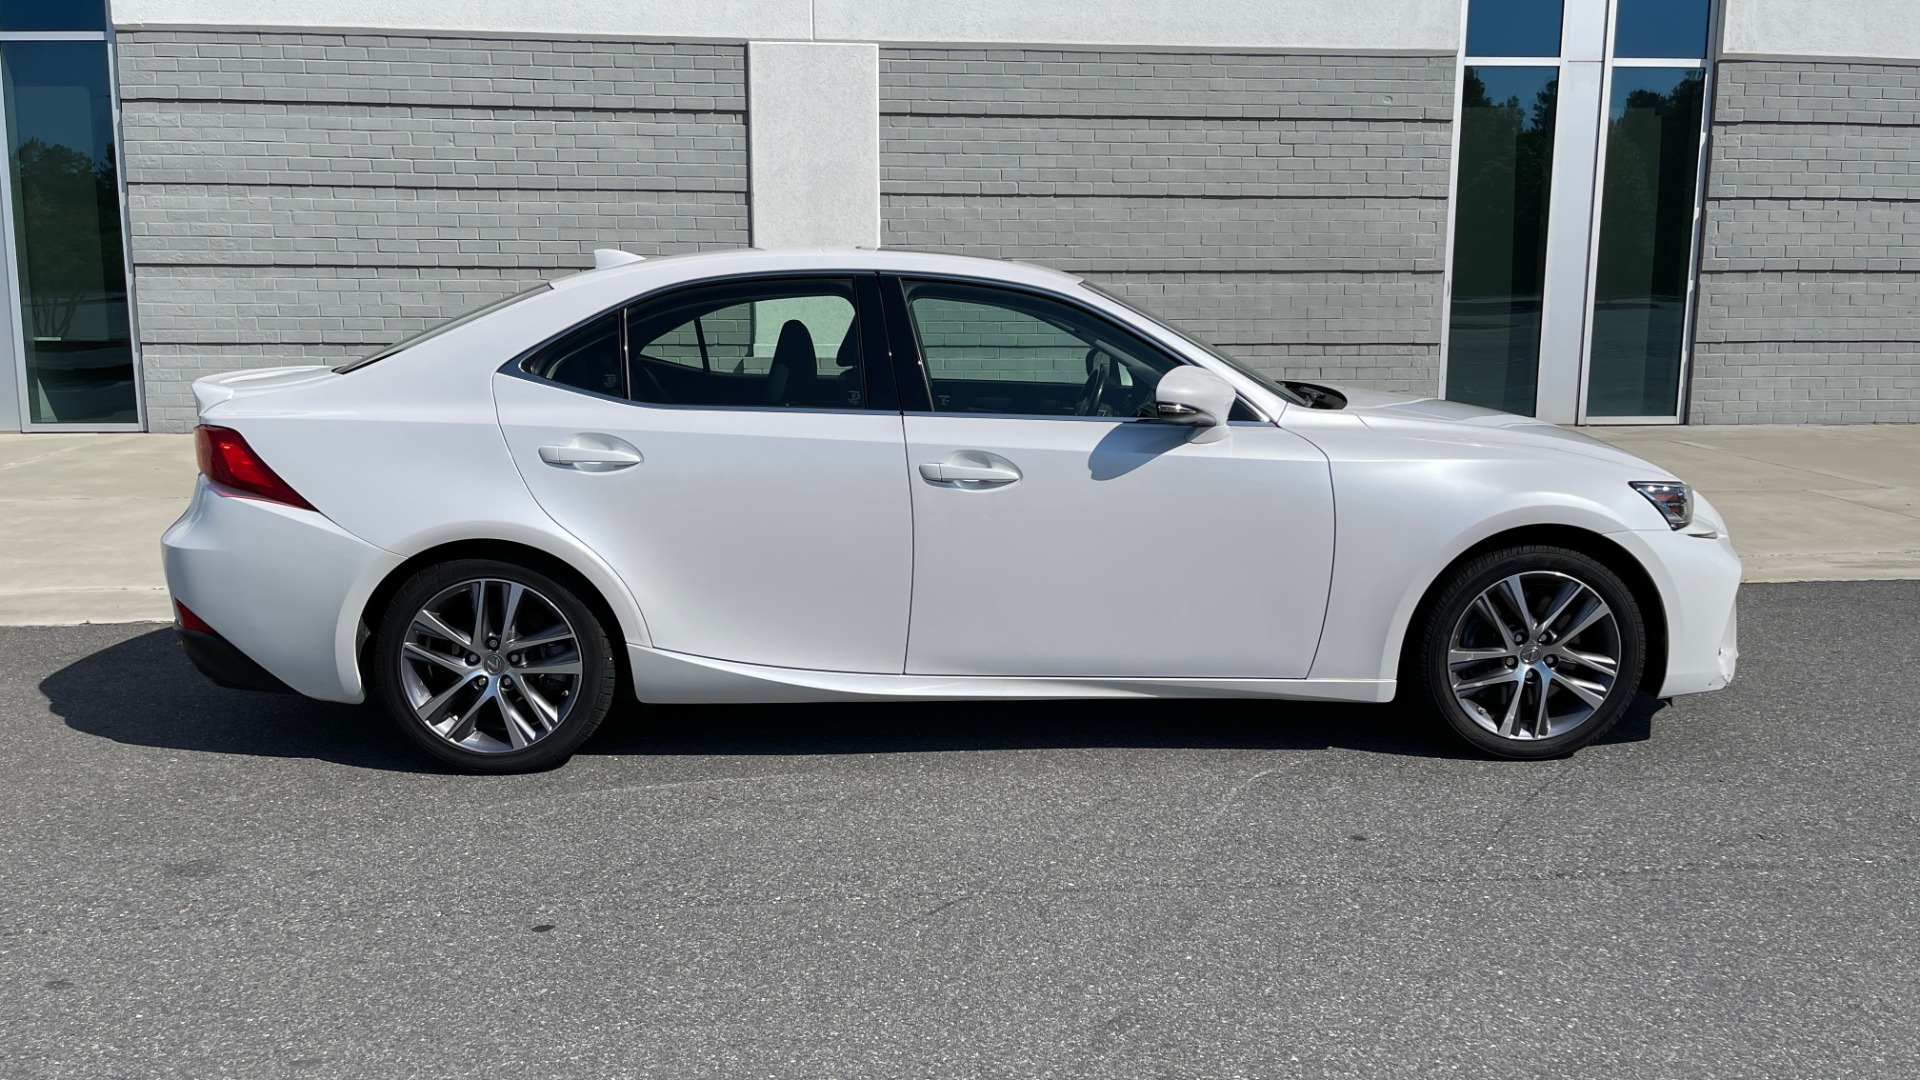 Used 2018 Lexus IS 300 / 2.0L TURBO / 8-SPD AUTO / SUNROOF / REARVIEW for sale $29,495 at Formula Imports in Charlotte NC 28227 7